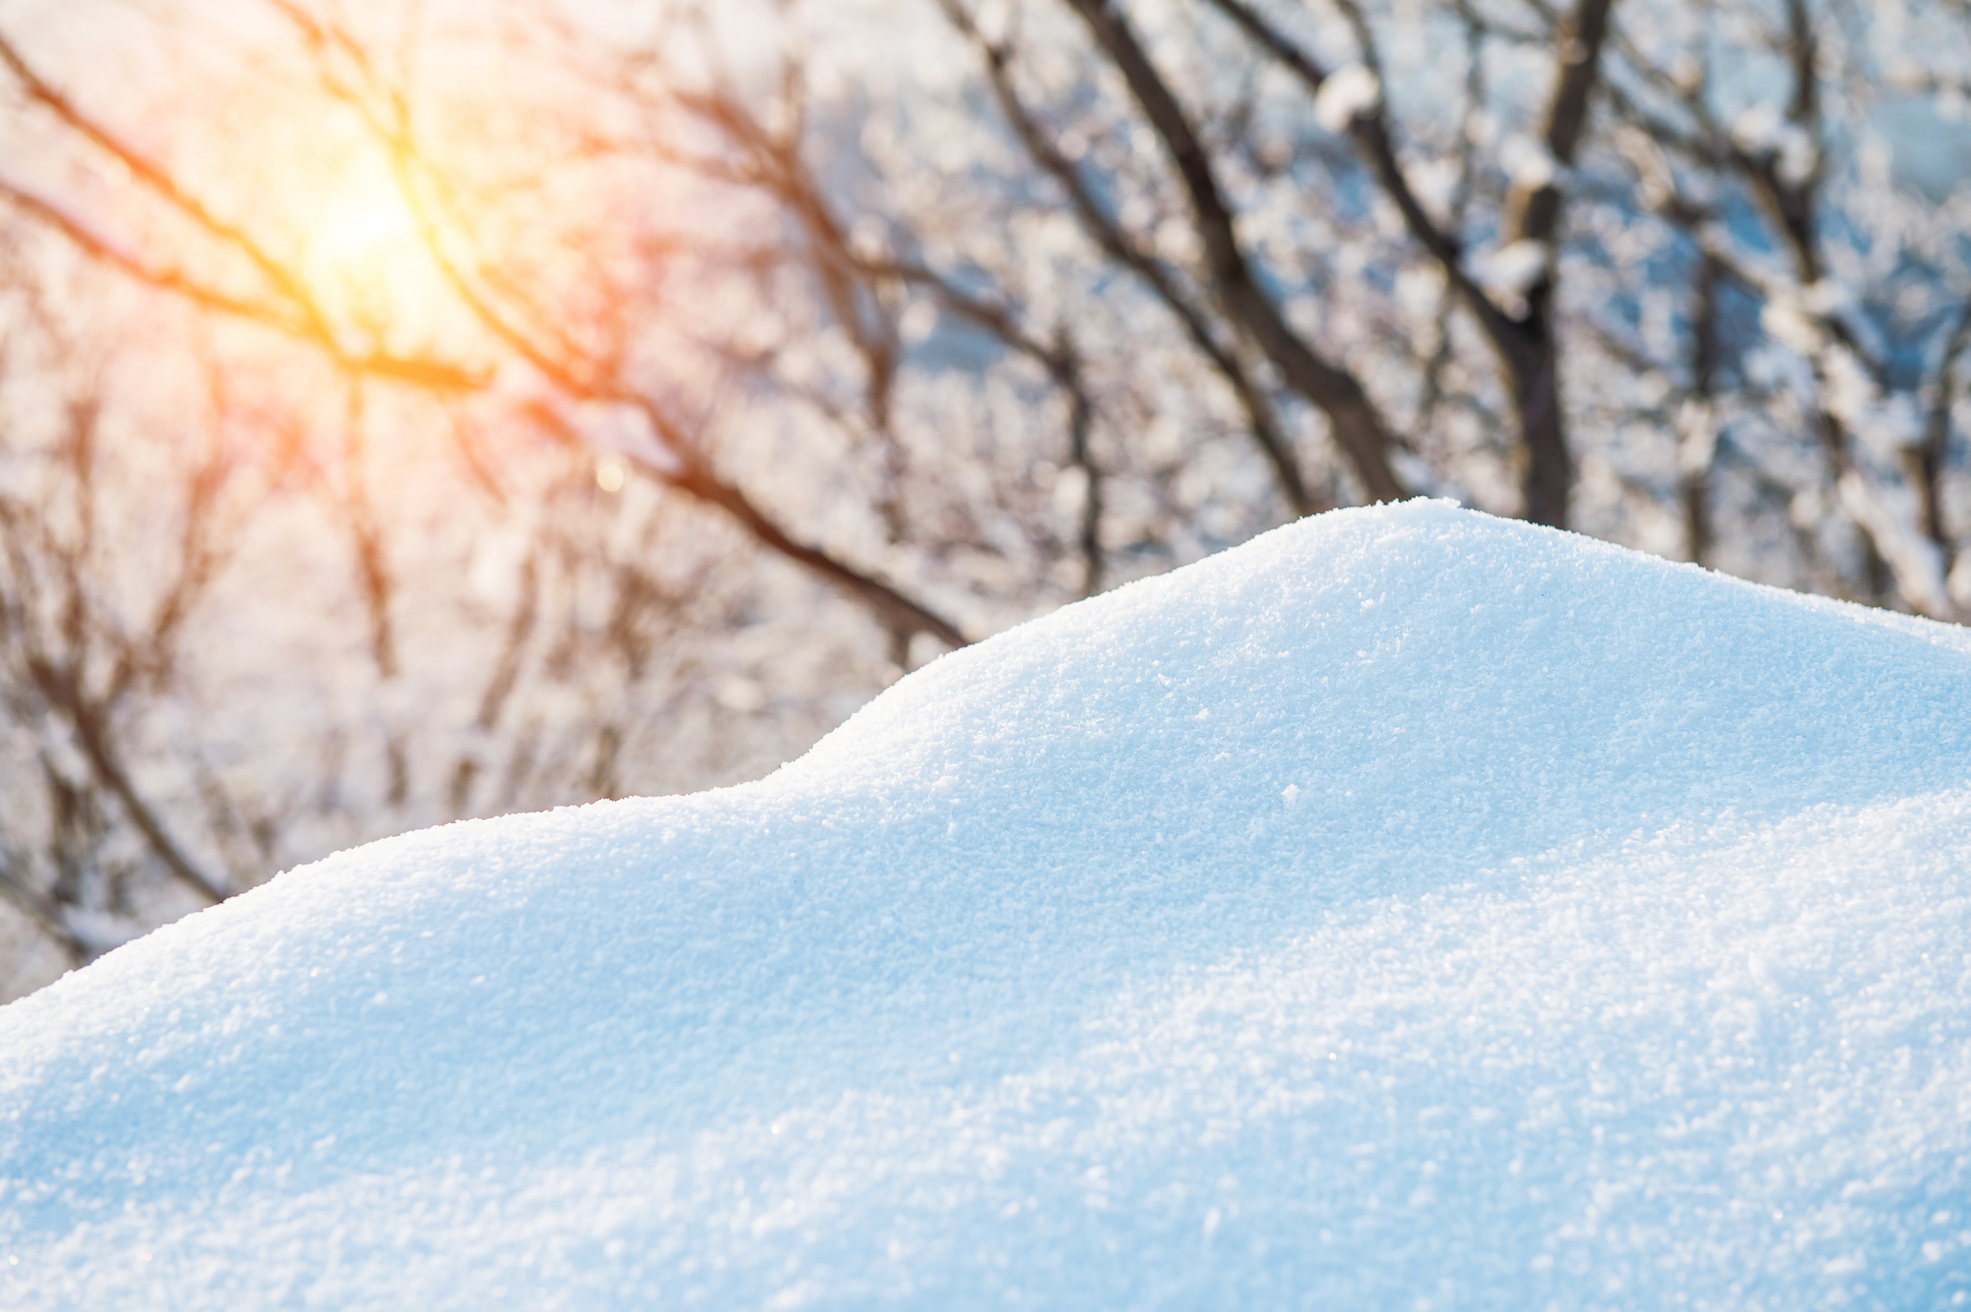 There's no business like snow business...and NASA is getting into it with its new SnowEx program to more accurately measure snowfall.